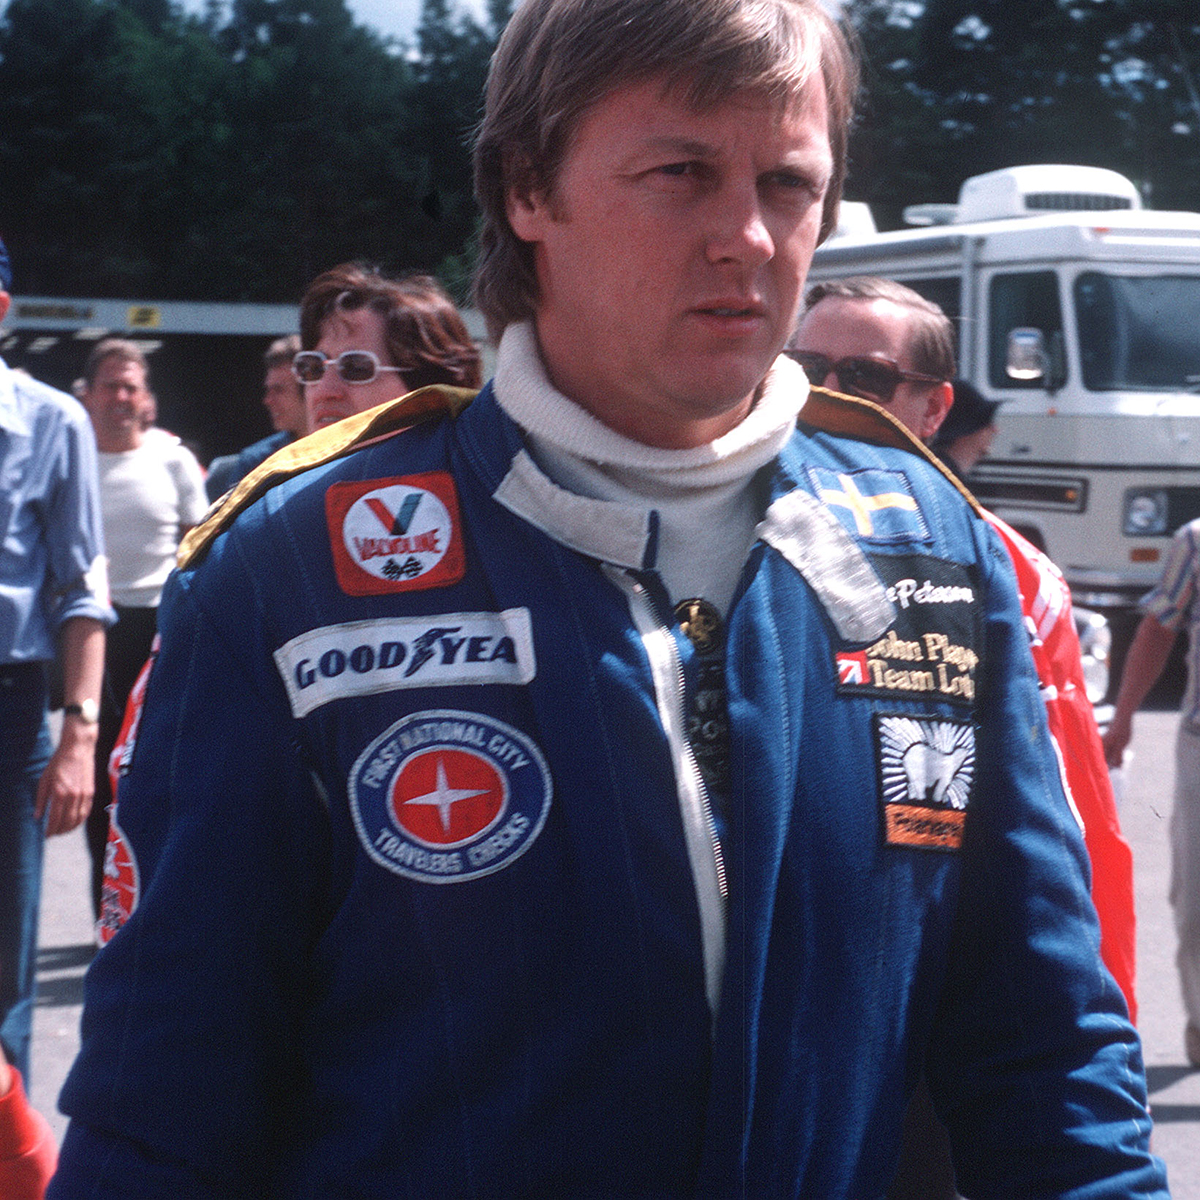 Ronnie Peterson, motor